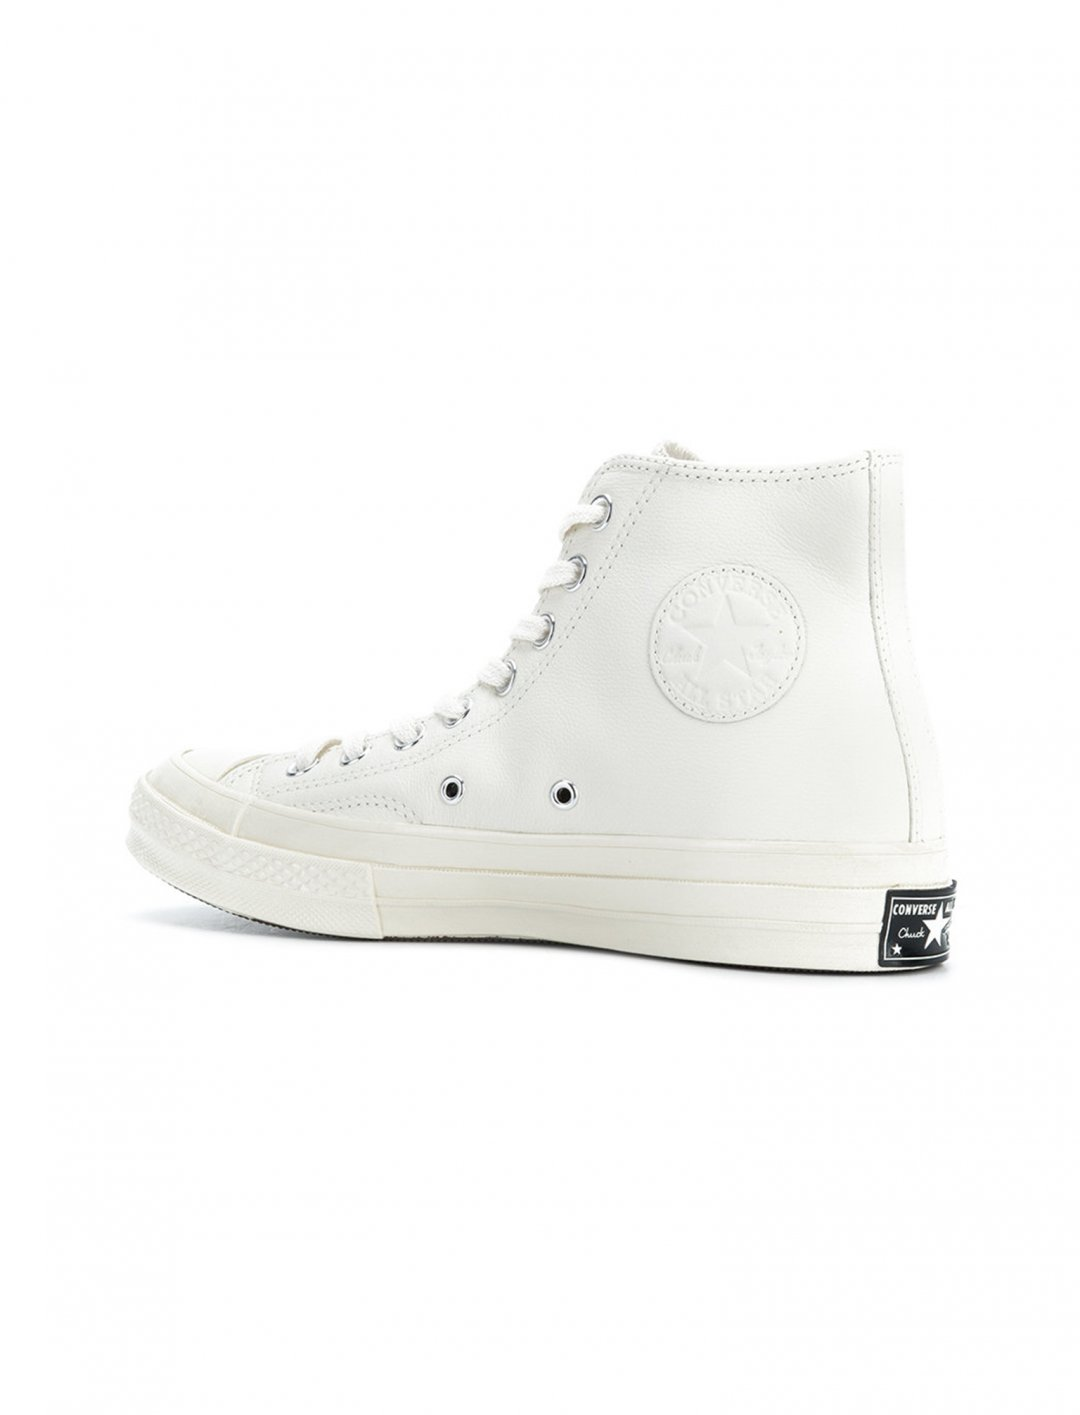 "Ruel's All Star 70 Sneakers {""id"":12,""product_section_id"":1,""name"":""Shoes"",""order"":12} Converse"